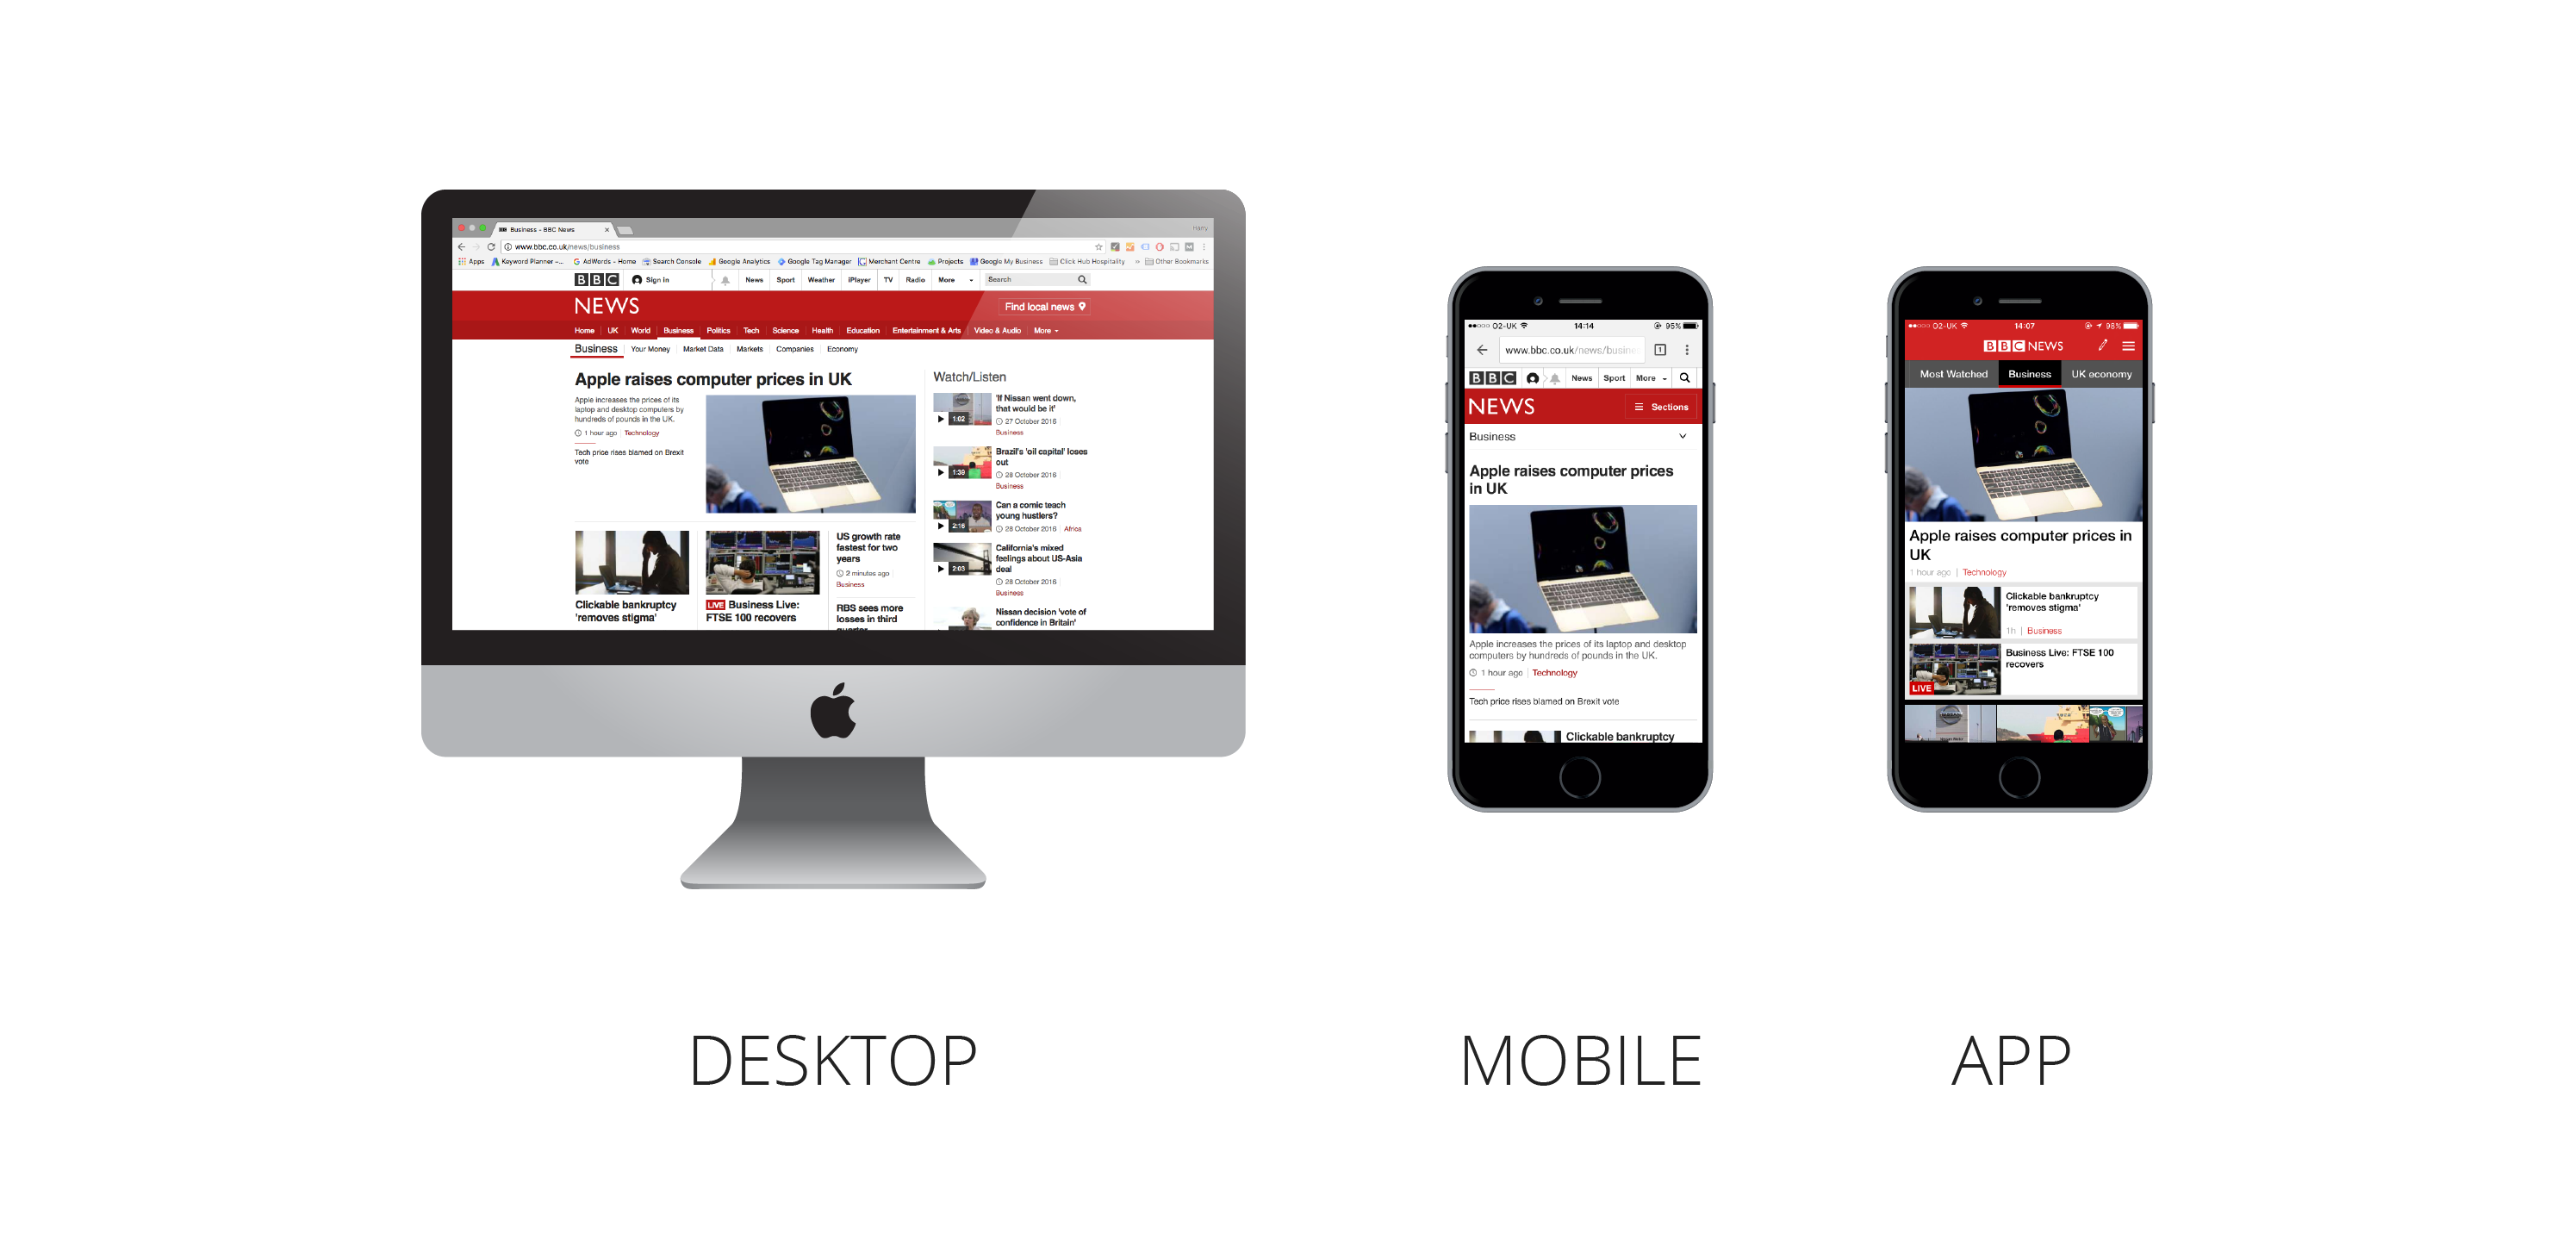 desktop versus app - optimise for mobile